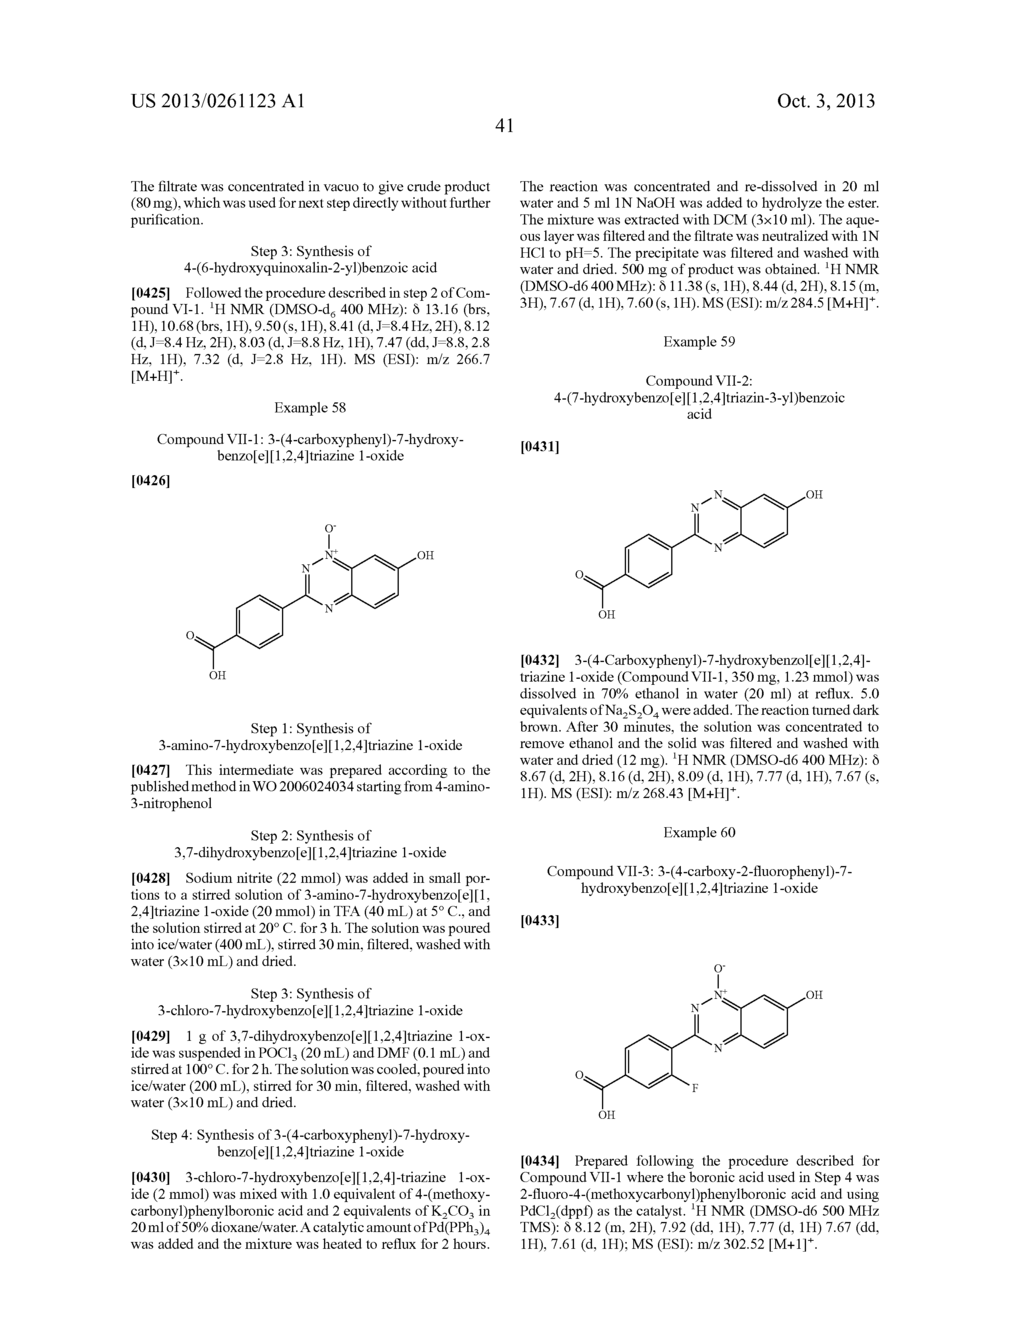 Novel Substituted Bicyclic Aromatic Compounds as S-Nitrosoglutathione     Reductase Inhibitors - diagram, schematic, and image 42